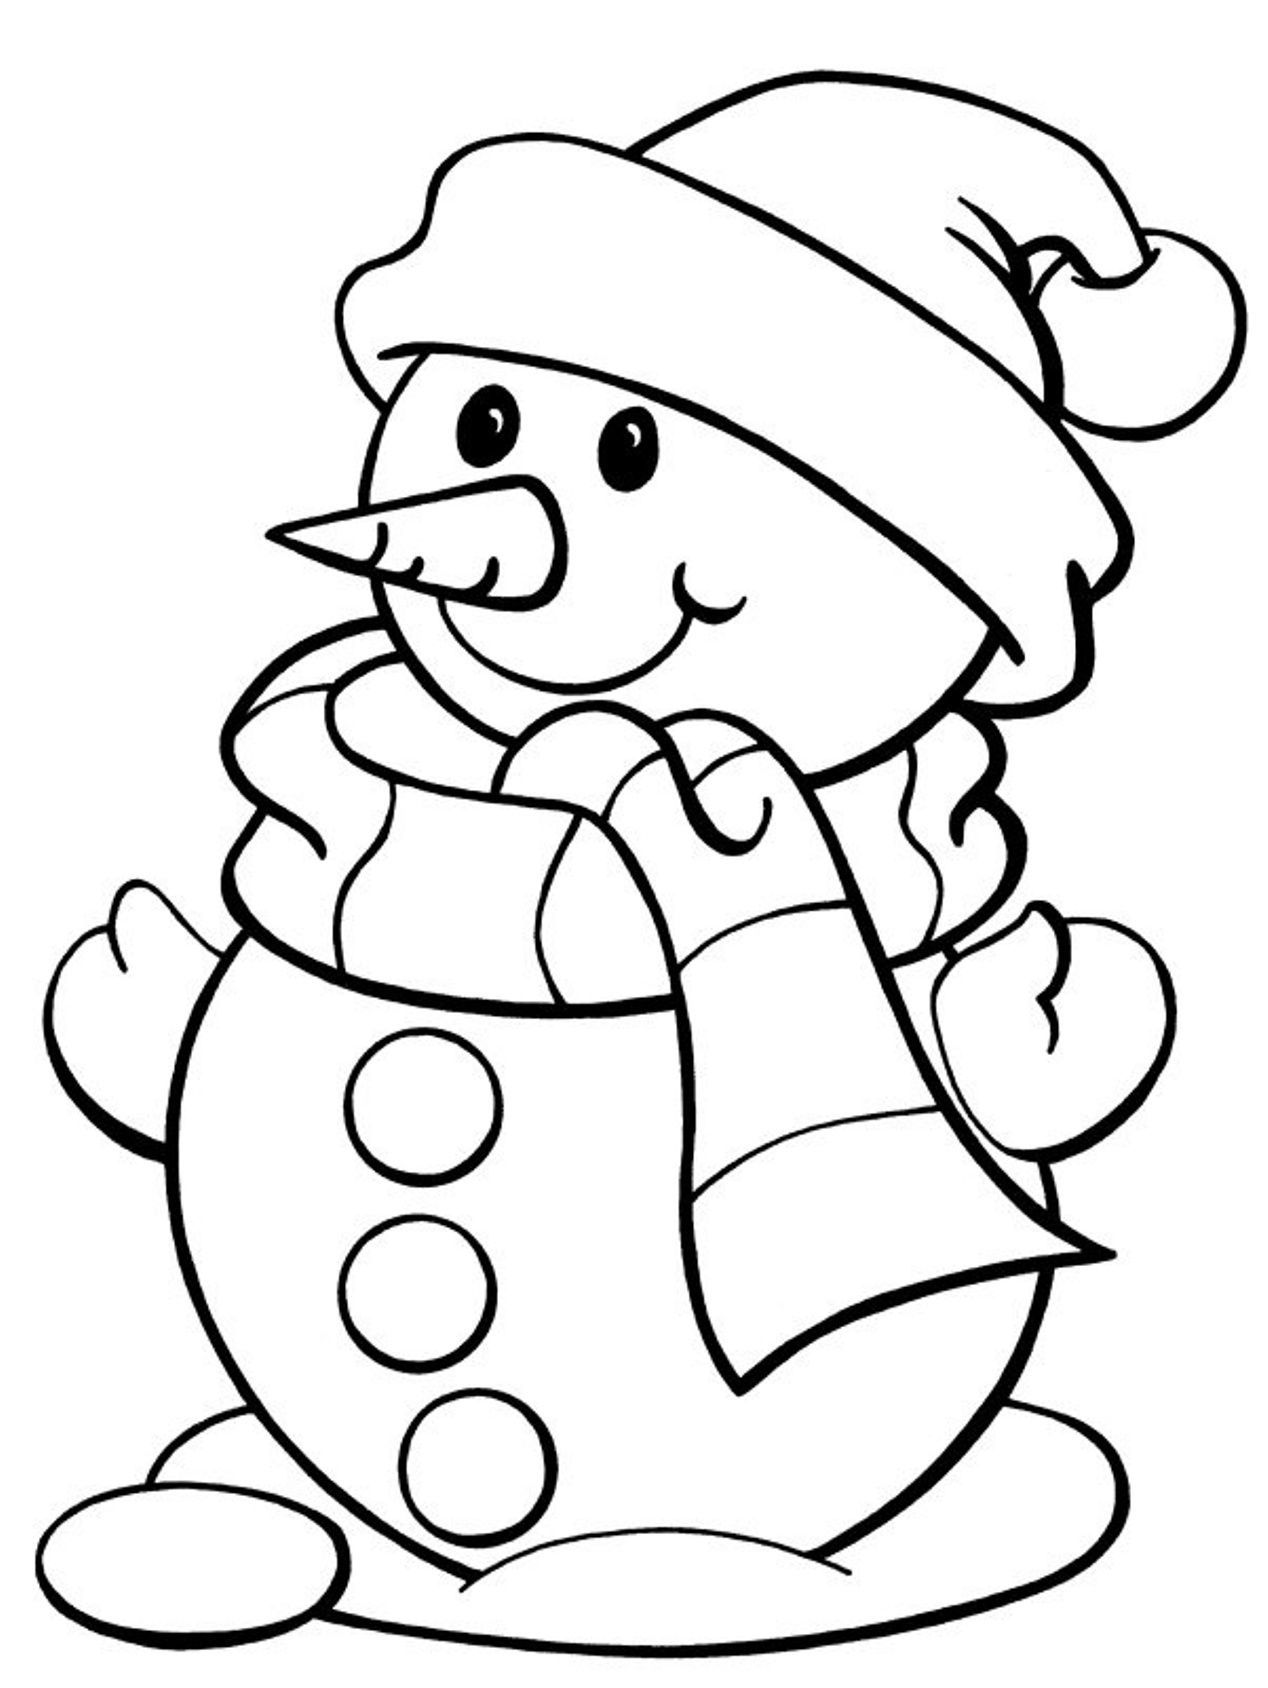 Free Winter Coloring Pages | Coloring Page | Kleurplaten - Christmas - Free Printable Winter Coloring Pages